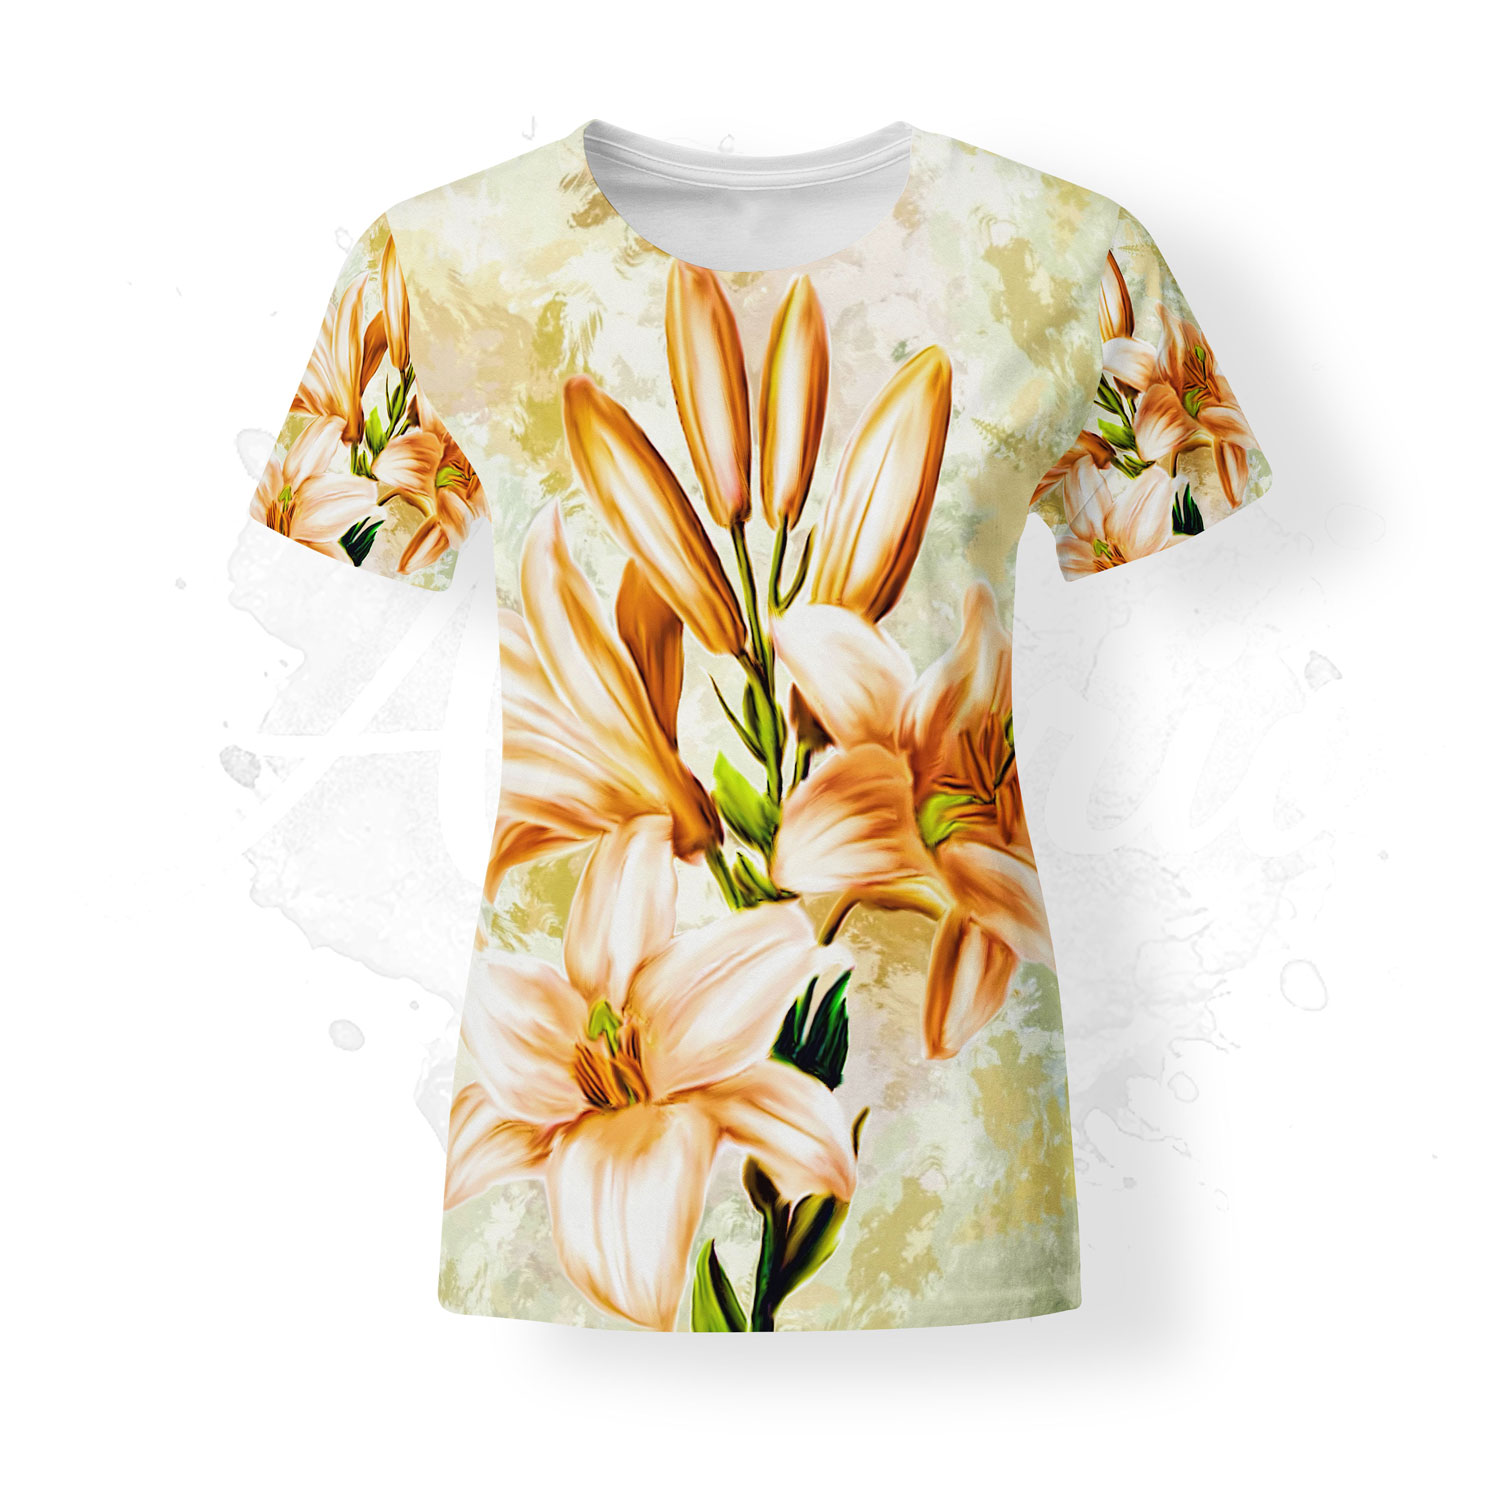 T-shirt for women, Almirio, Lily, flowers